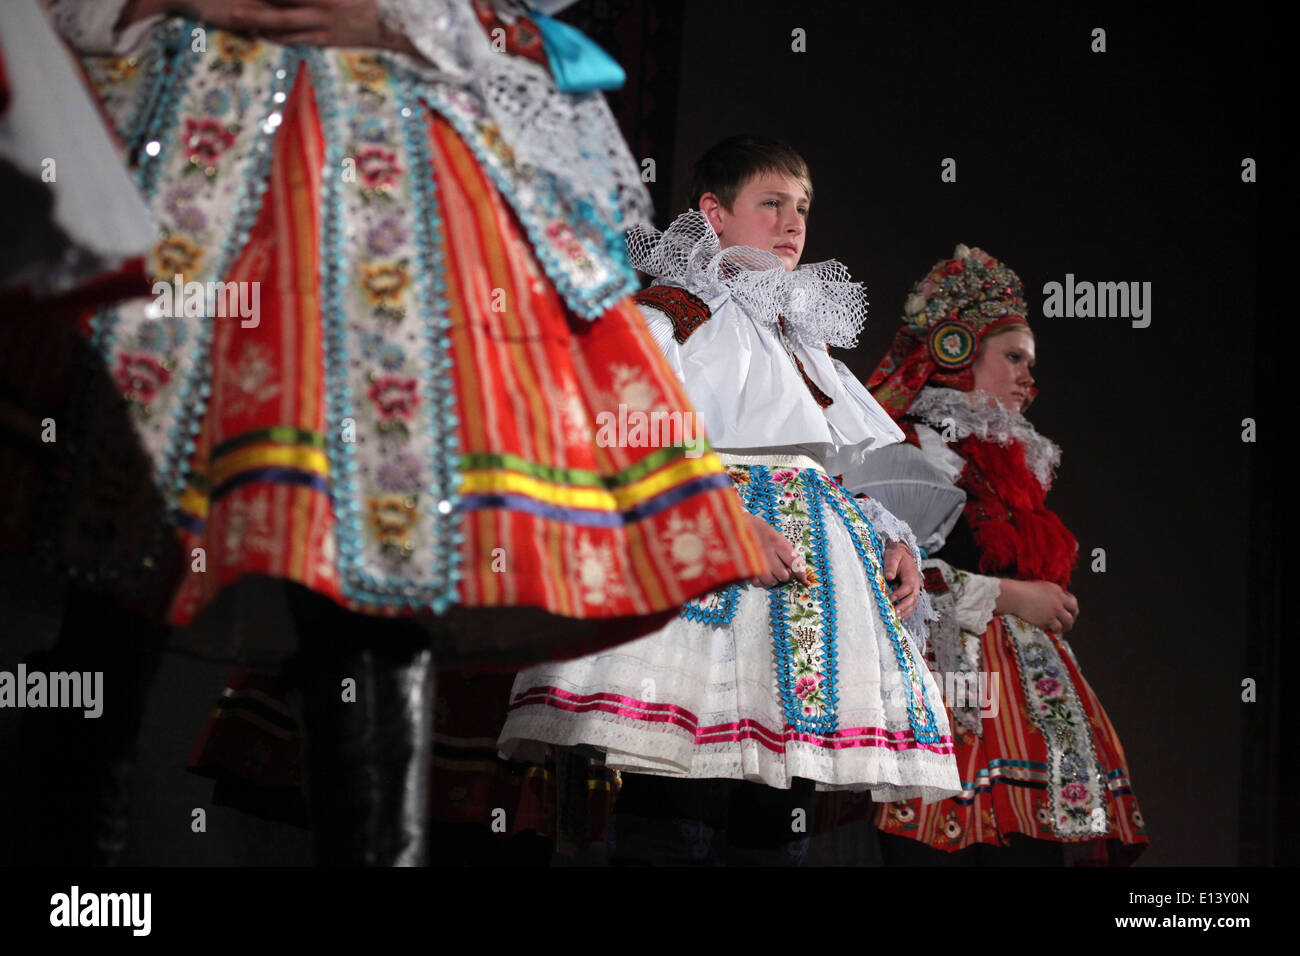 The Ride of the Kings. Traditional folklore festival in Vlcnov, Czech Republic. Coronation ceremony of the boy king. - Stock Image